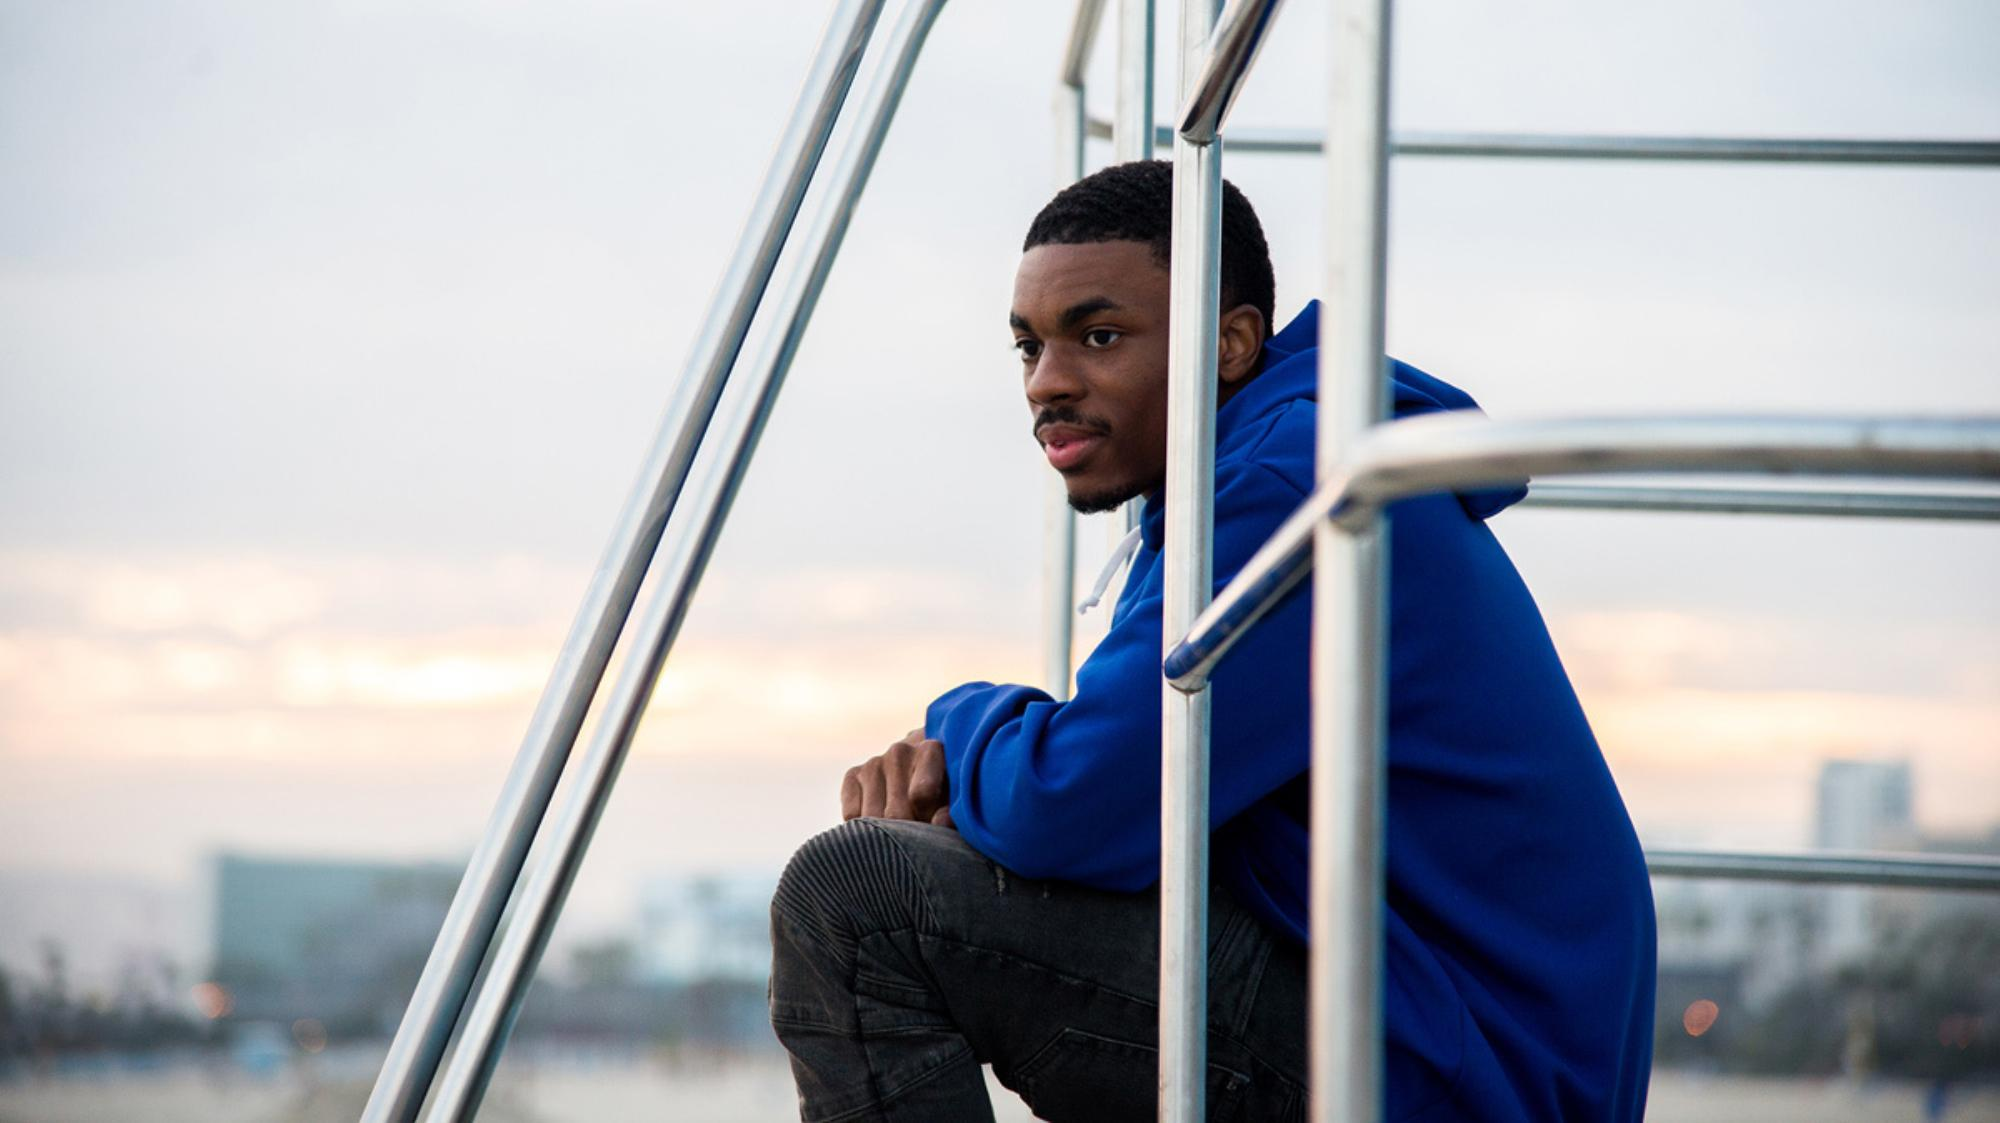 """@Sprite is a flavored beverage of the people."" - @vincestaples http://t.co/m23CVQBc36 http://t.co/cOB4TrXDEd"